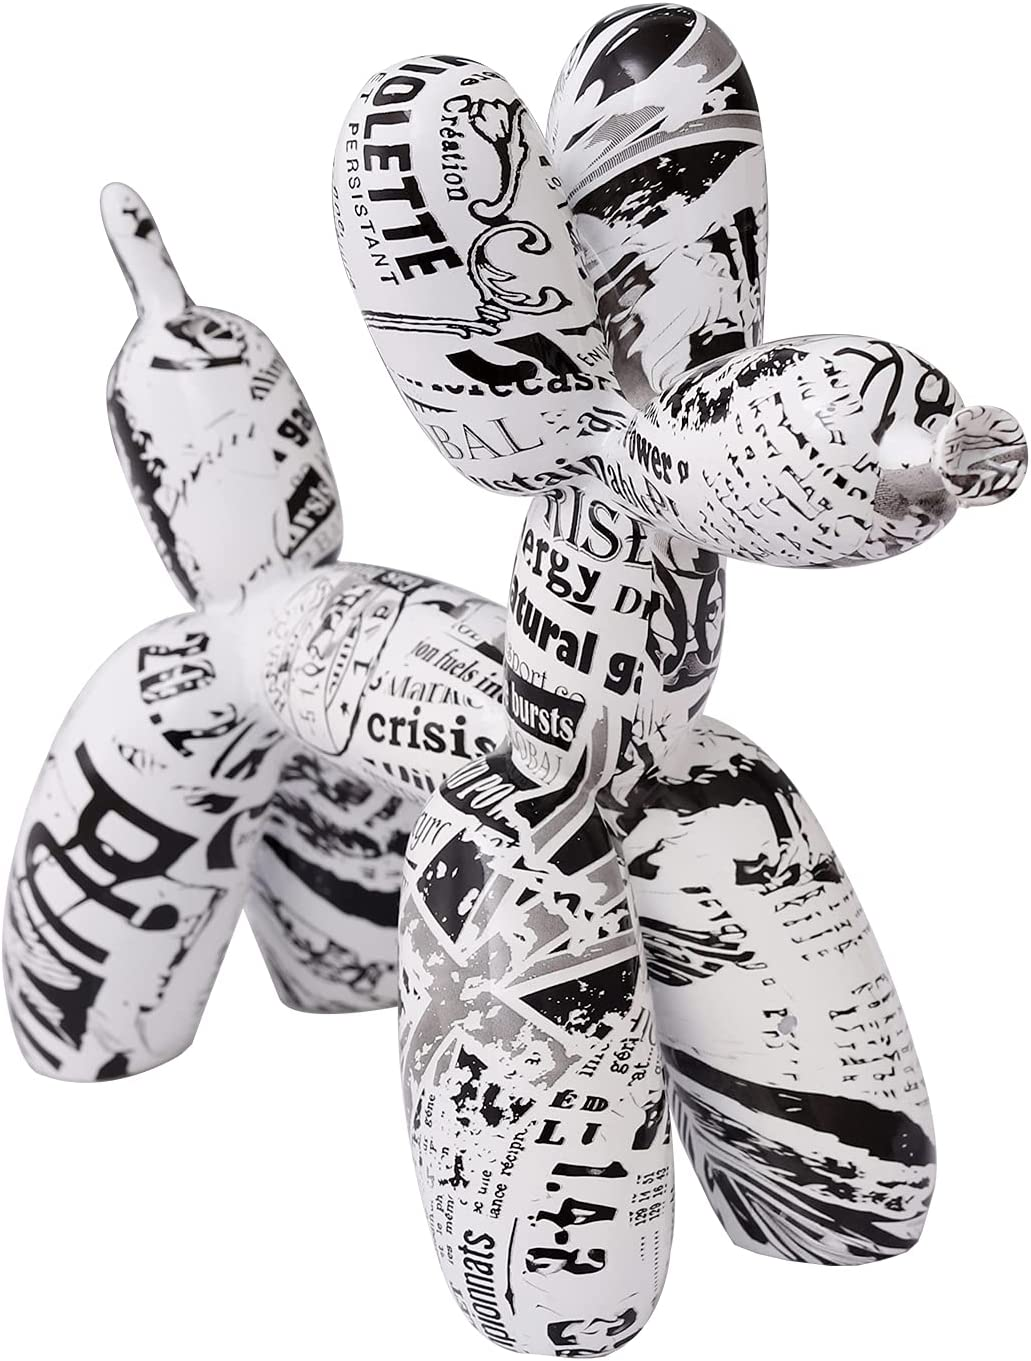 Newspaper Balloon Dog Statue Decor ,Figurines for Home Decor, Bookshelf TV Stand Decor,Shelf Decorations for Home,Bedroom,Living Room and Office,Memorial Gift,Size:10.23 x 3.94 x 8.27 inches